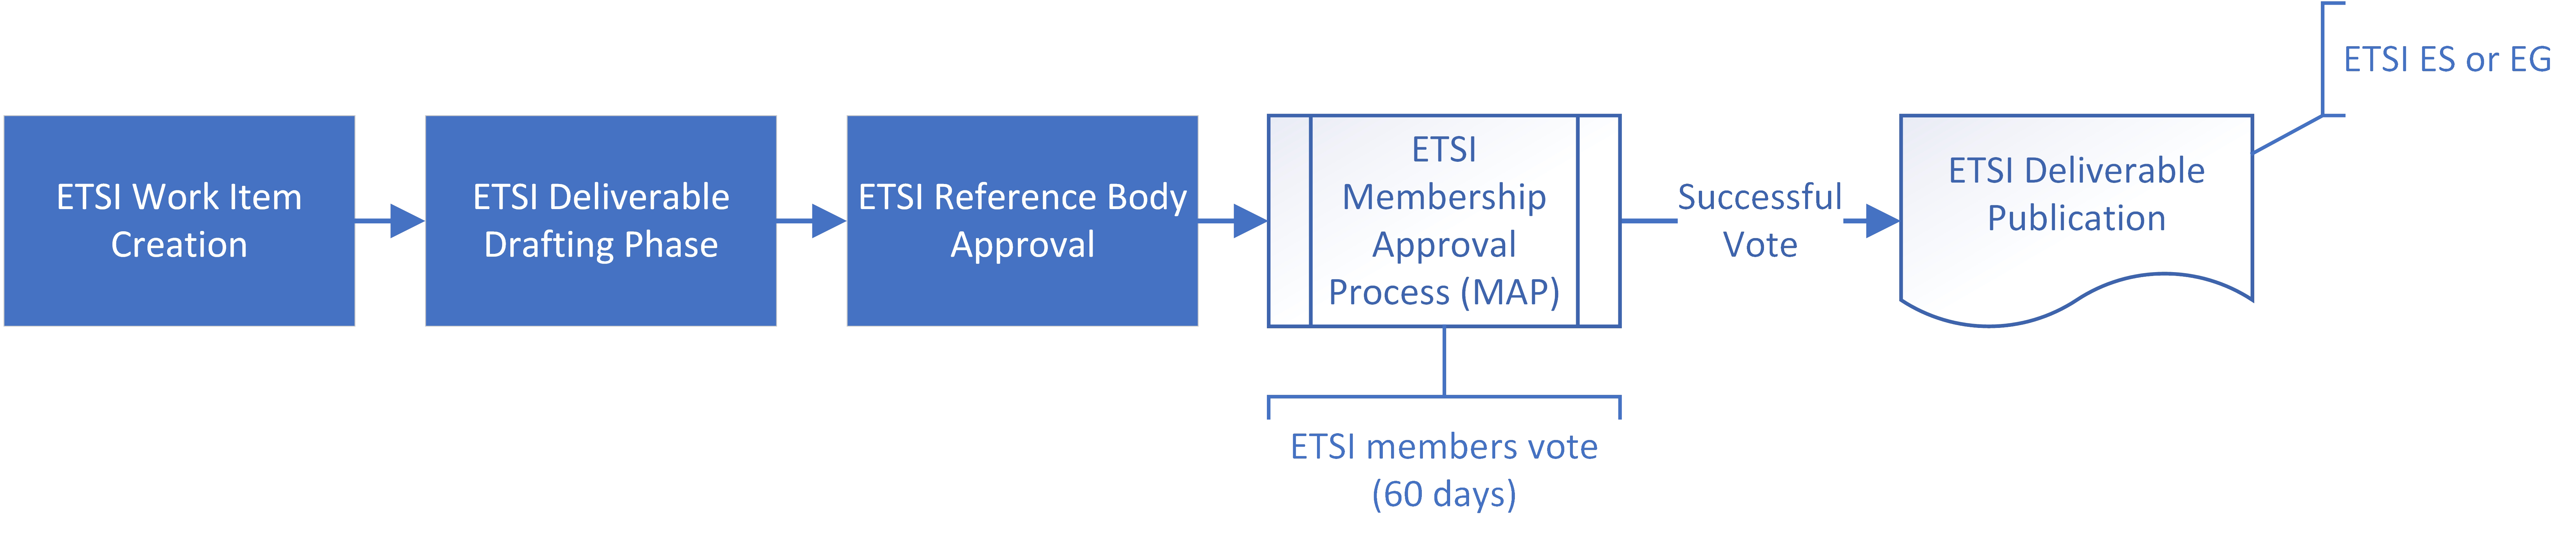 Description of publication process from work item creation over drafting, approval and membership approval to publication of ETSI ES and EG